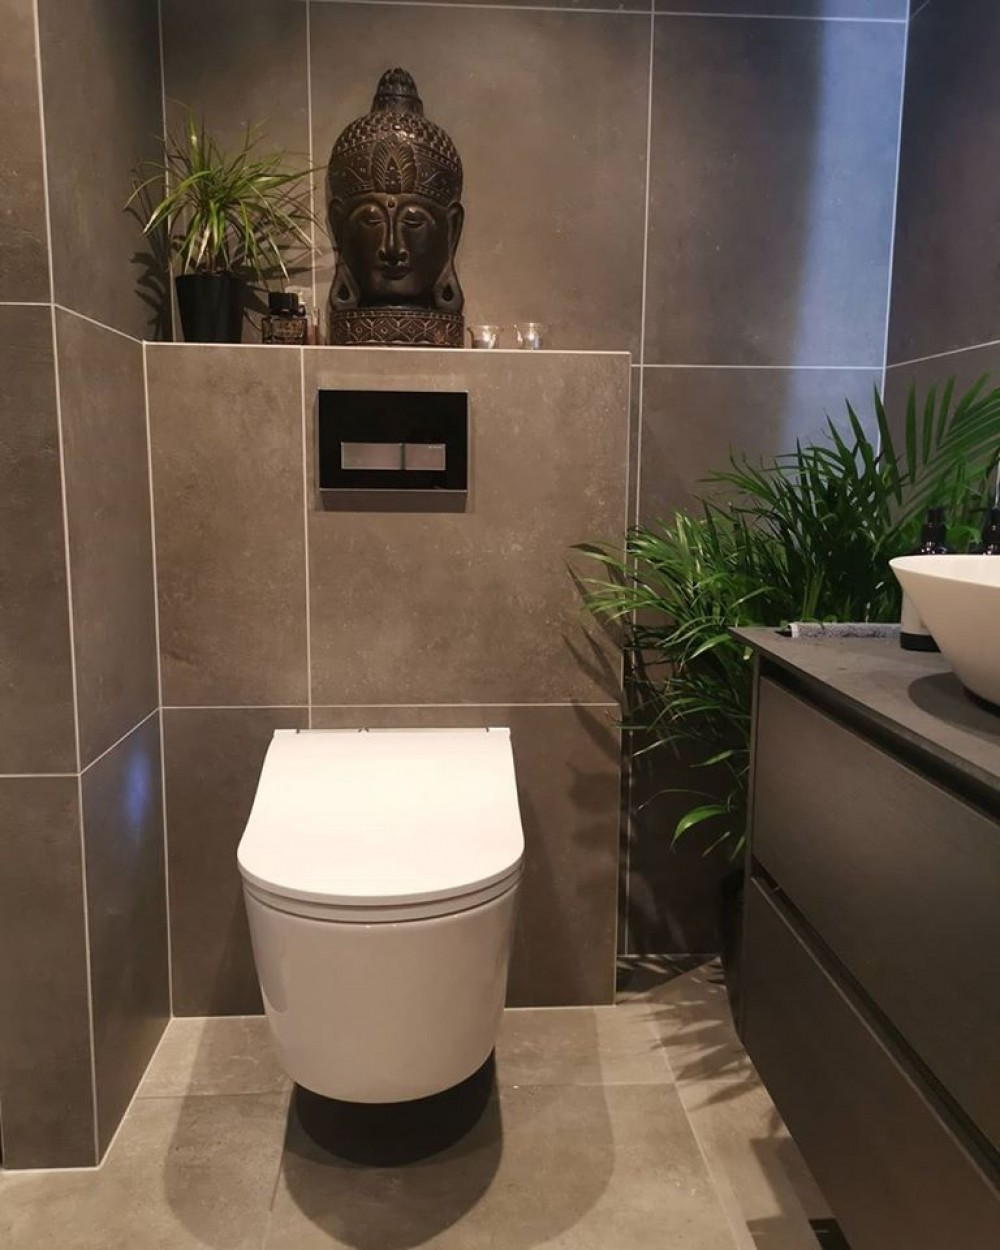 TOTO Washlet RW - Geberit Duofix UP320, Geberit Sigma 50 Installation